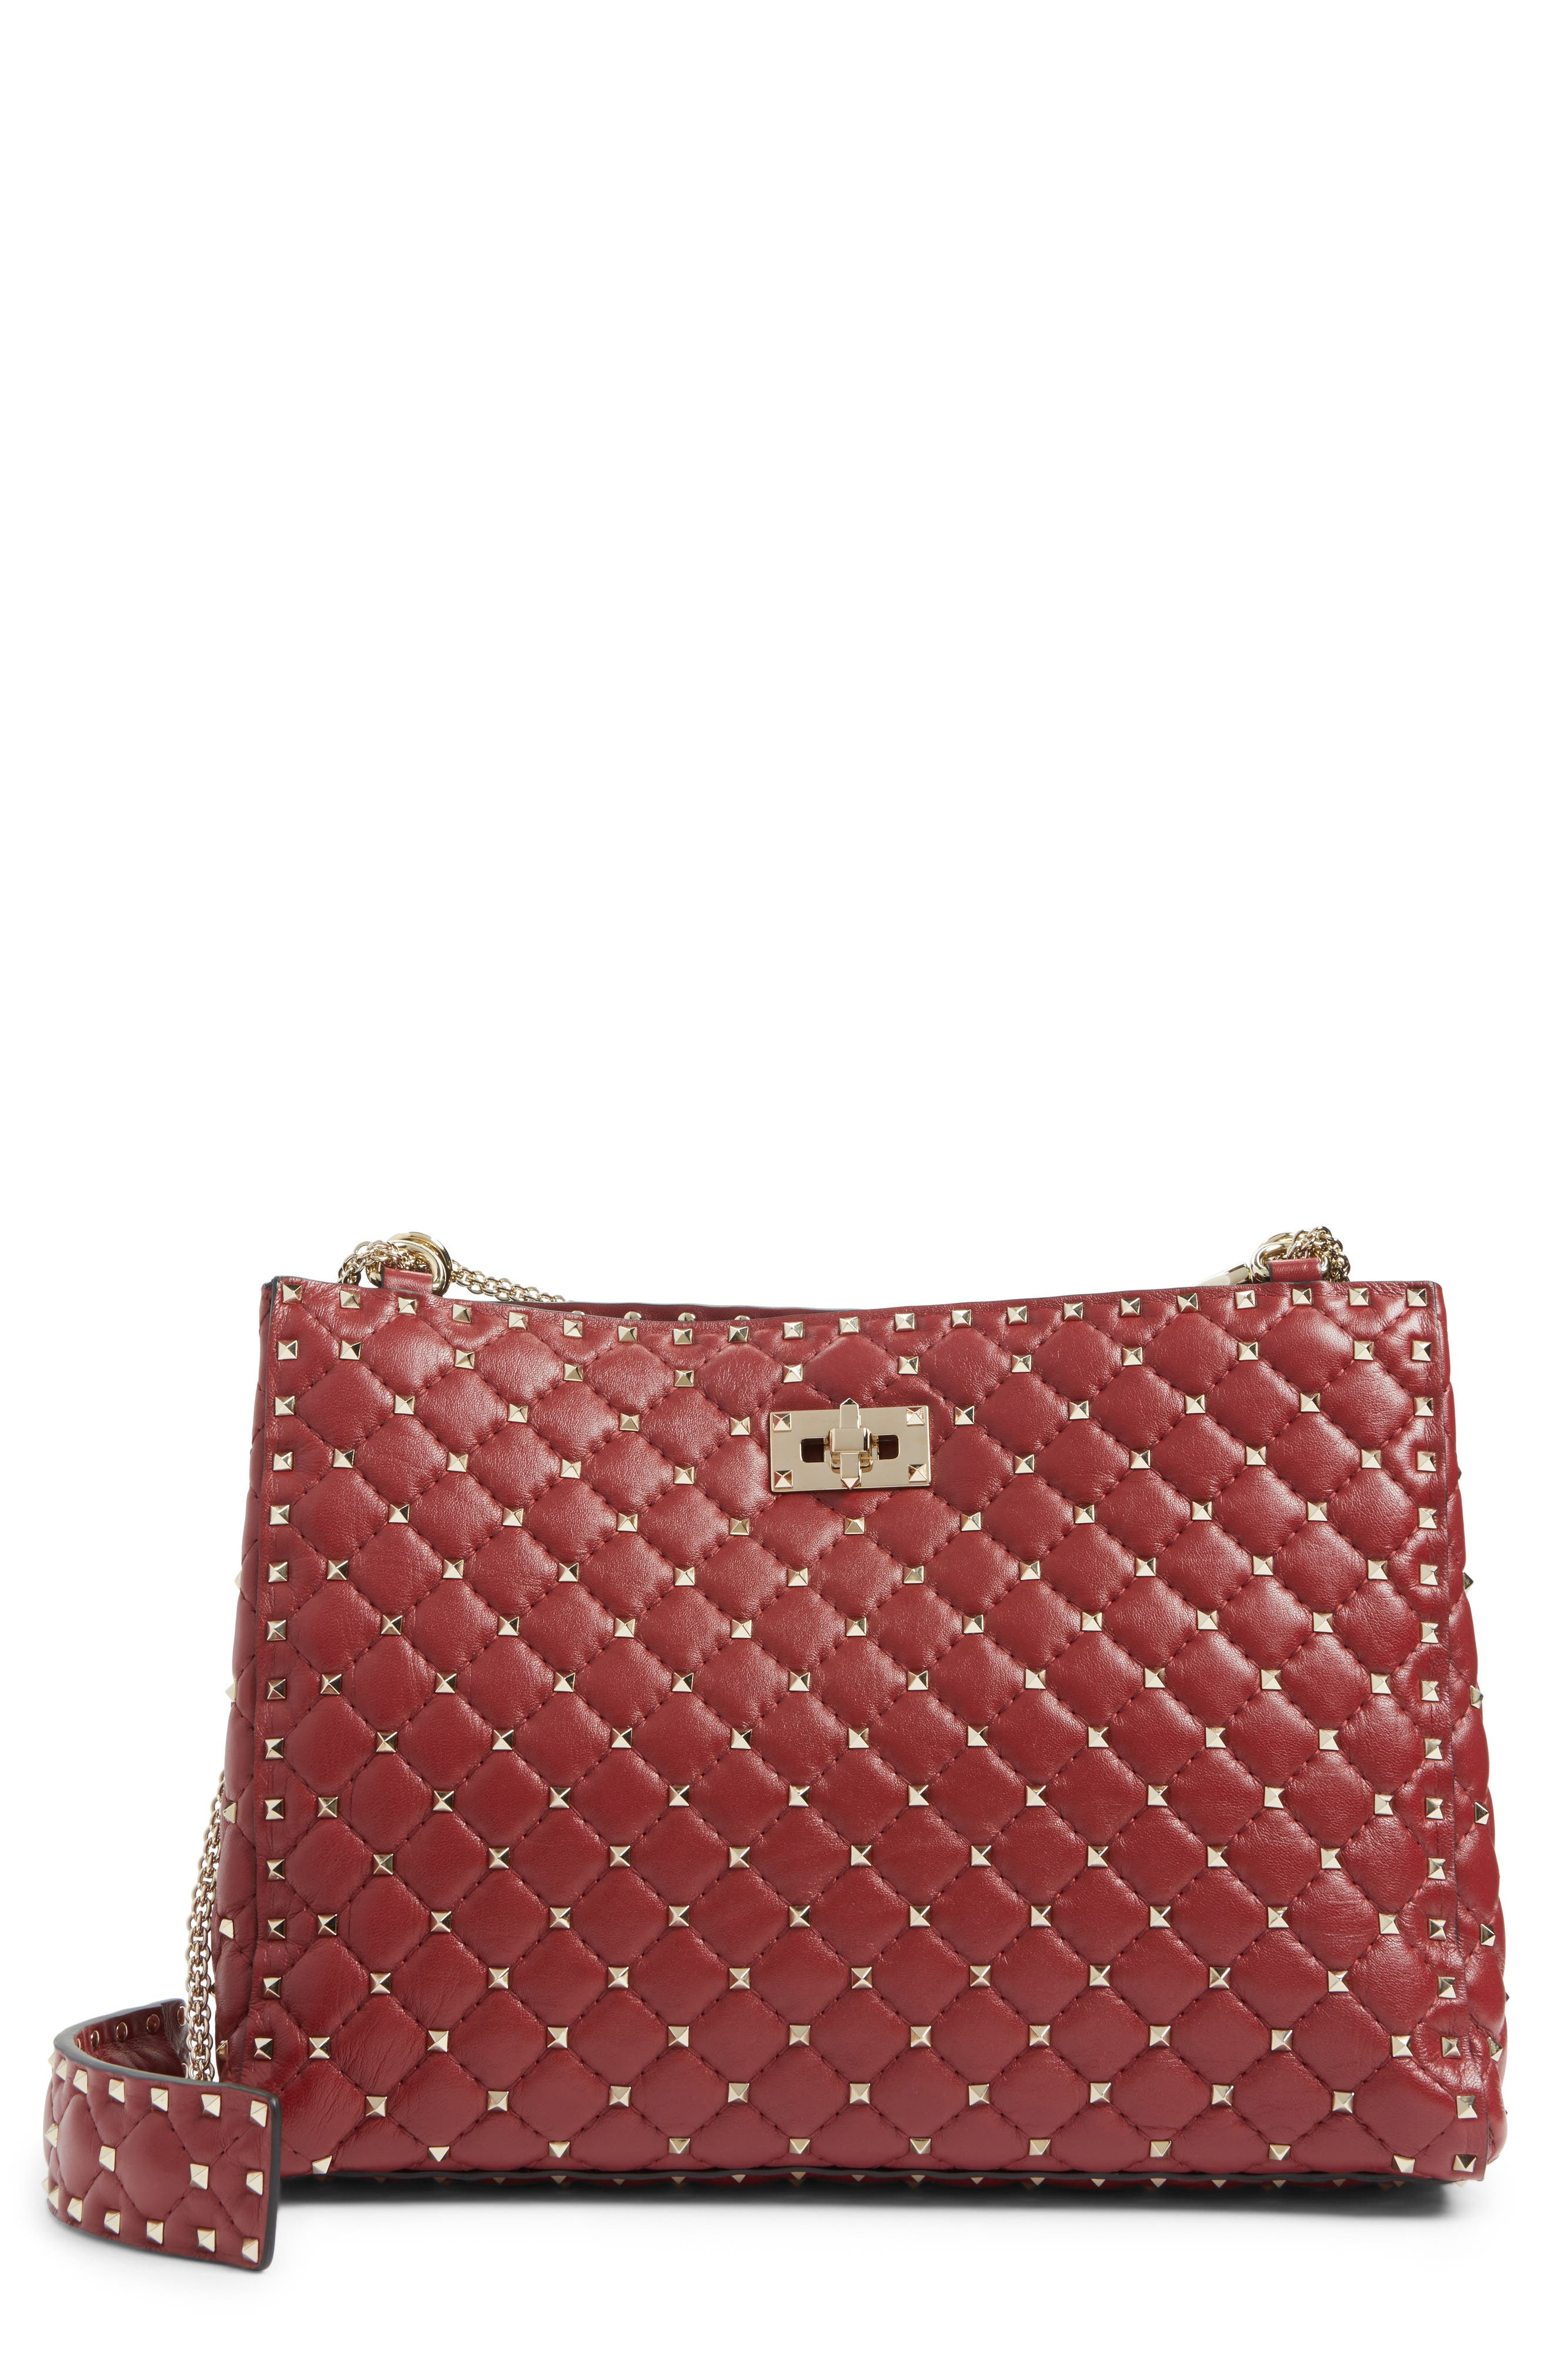 Main Image - VALENTINO GARAVANI Rockstud Spike Quilted Lambskin Leather Shoulder Bag